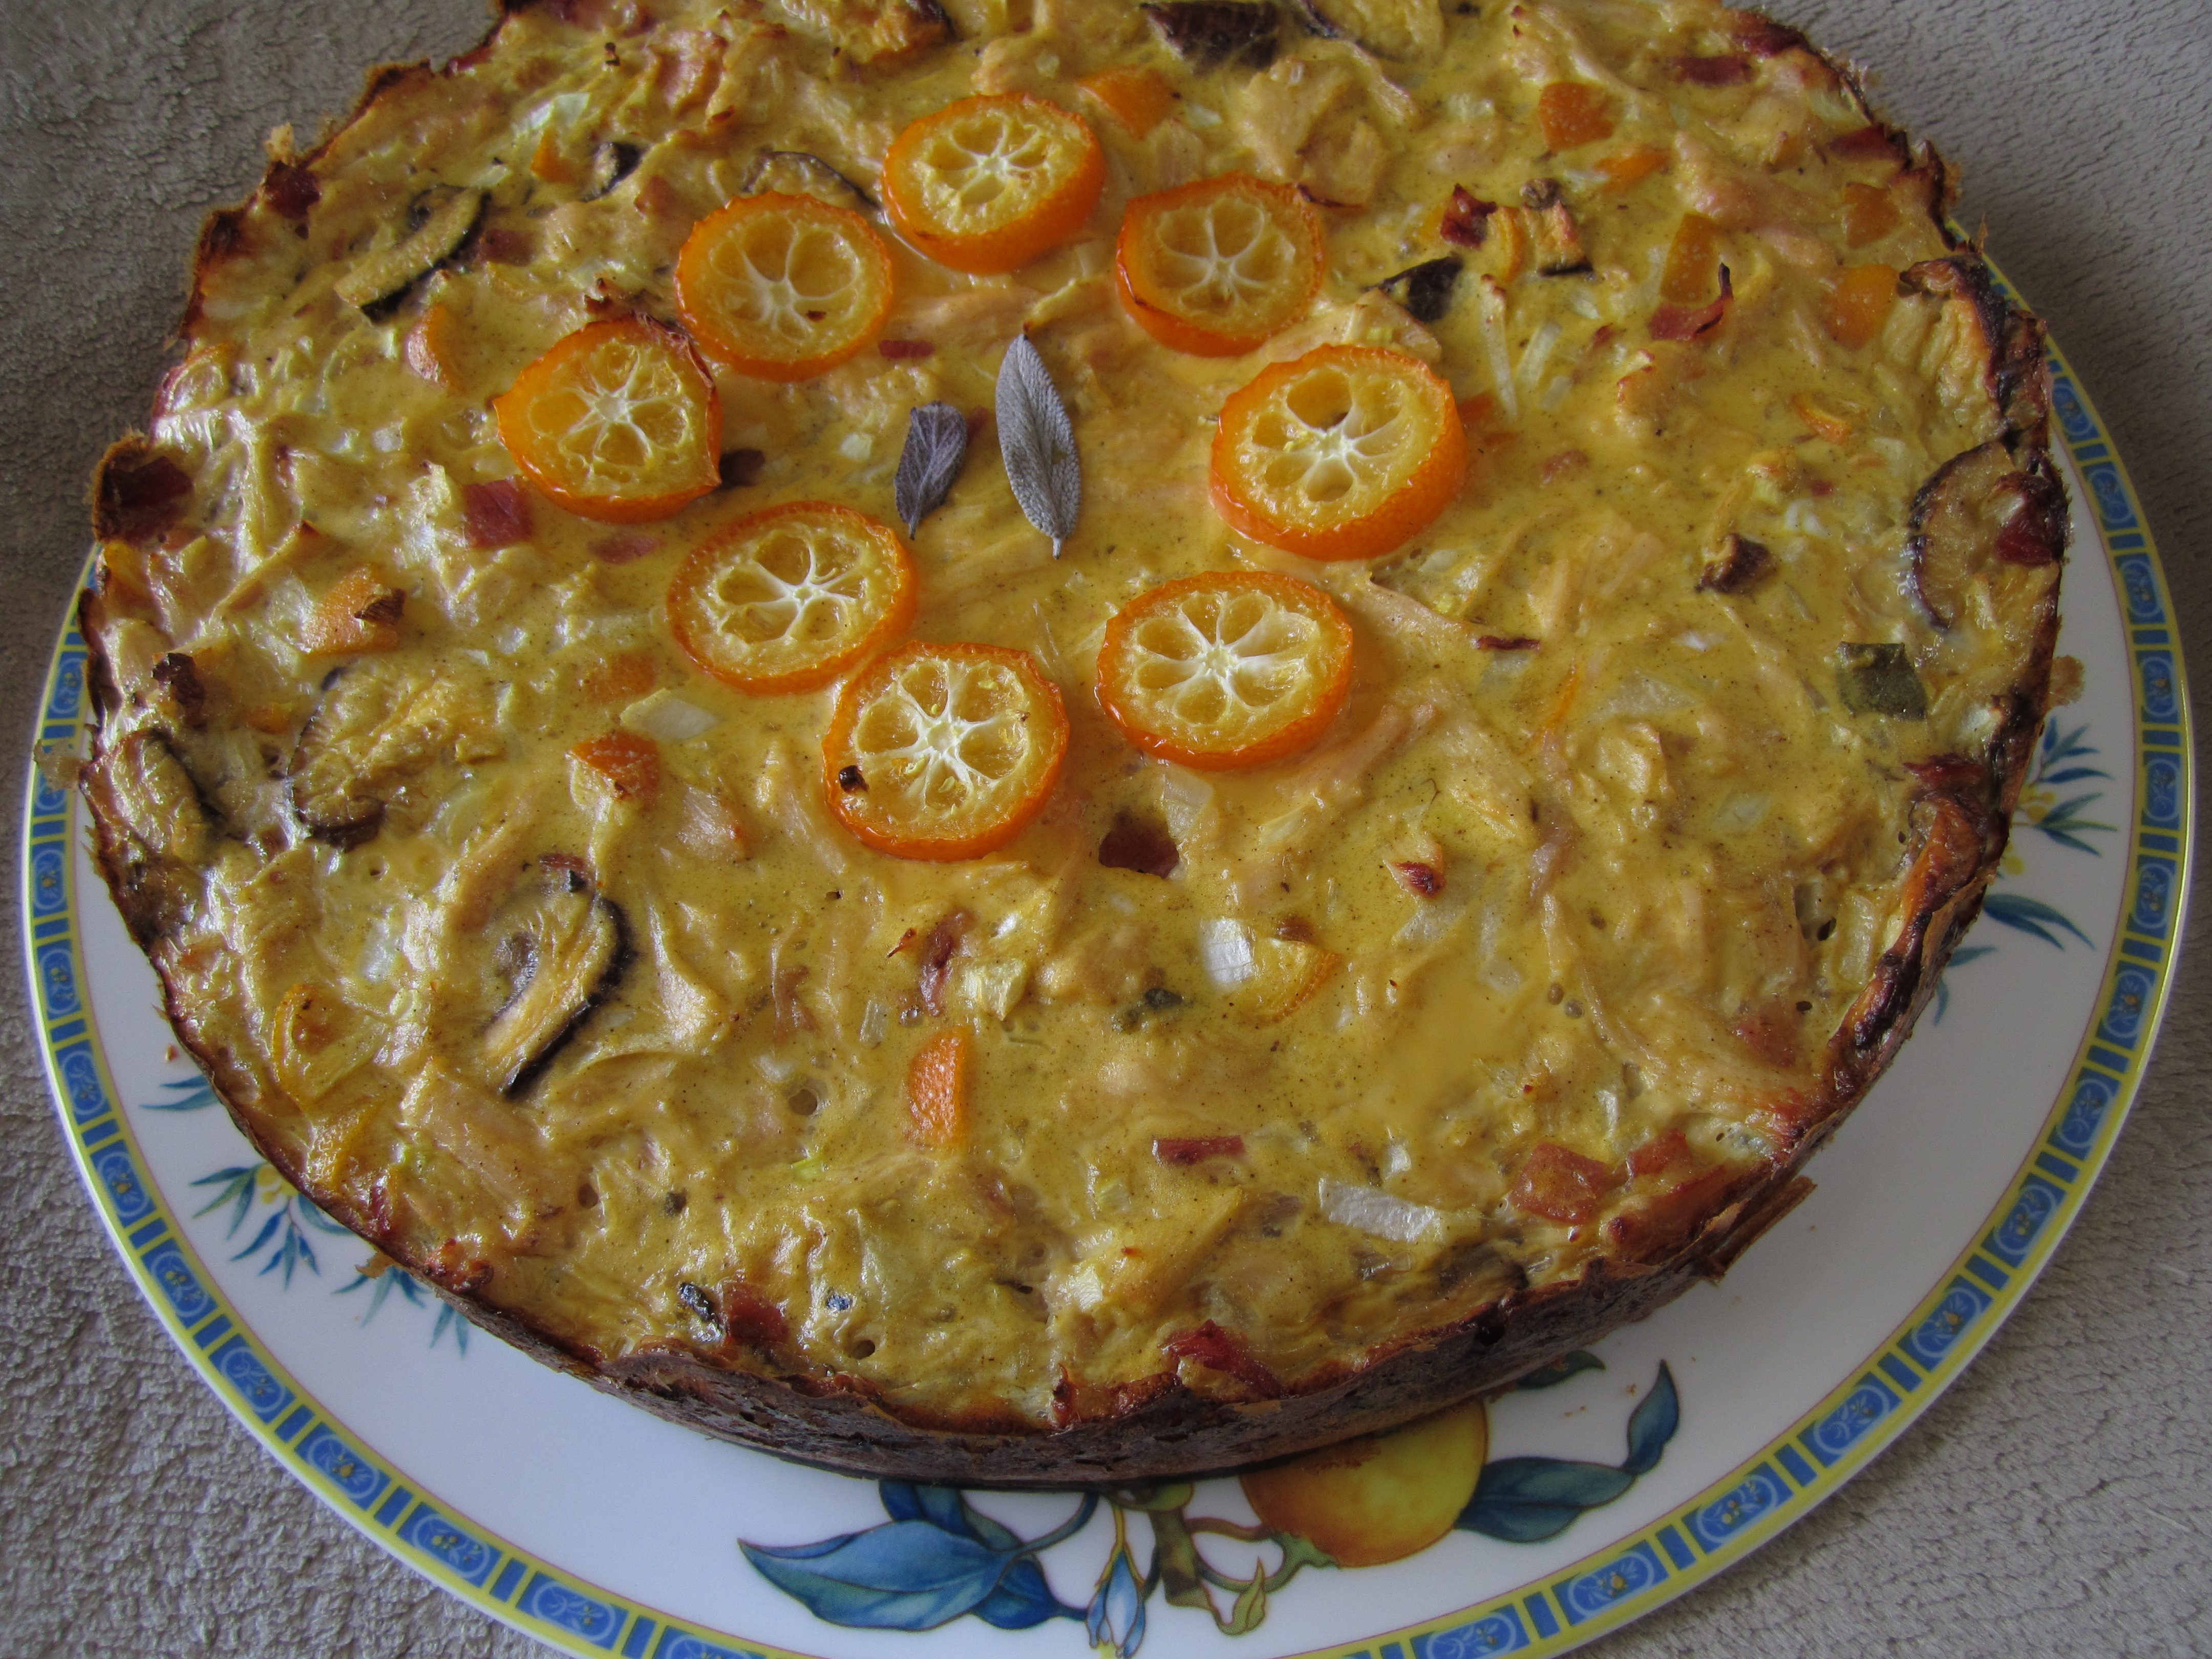 Leftover-Turkey Kumquat Shiitake Quiche